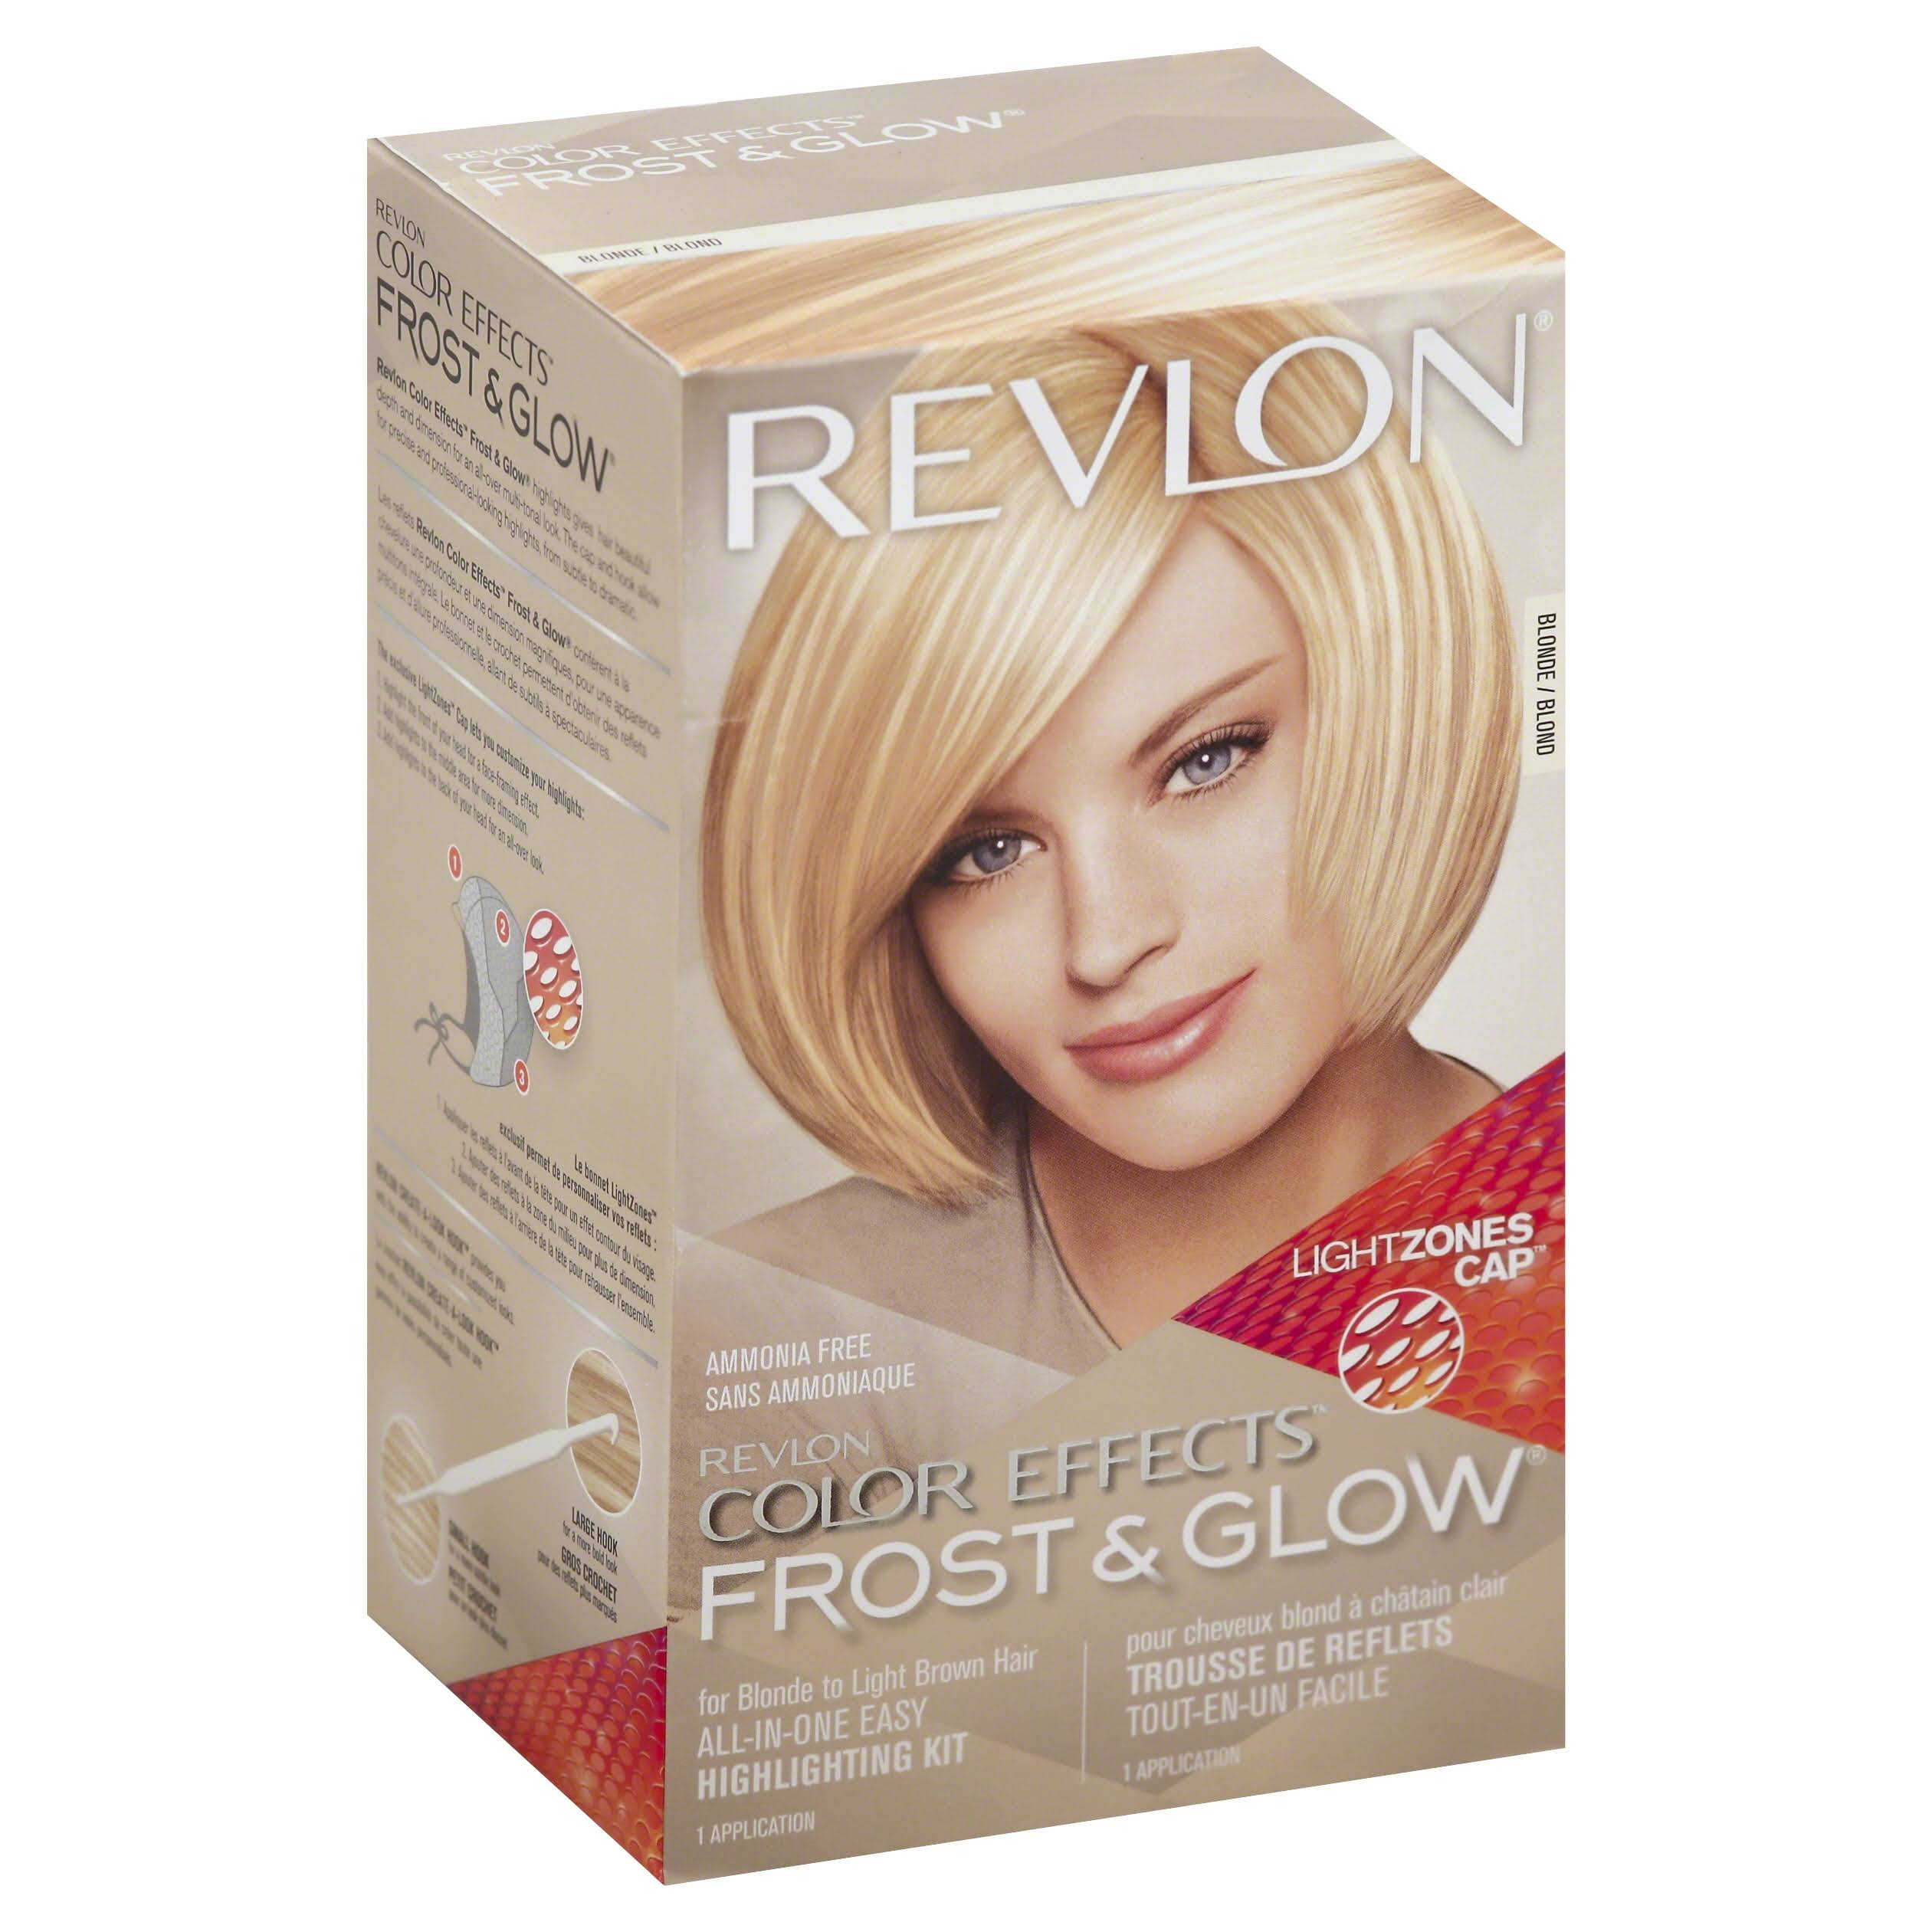 Revlon Color Effects Frost and Glow Hair Highlighting Kit - Blonde